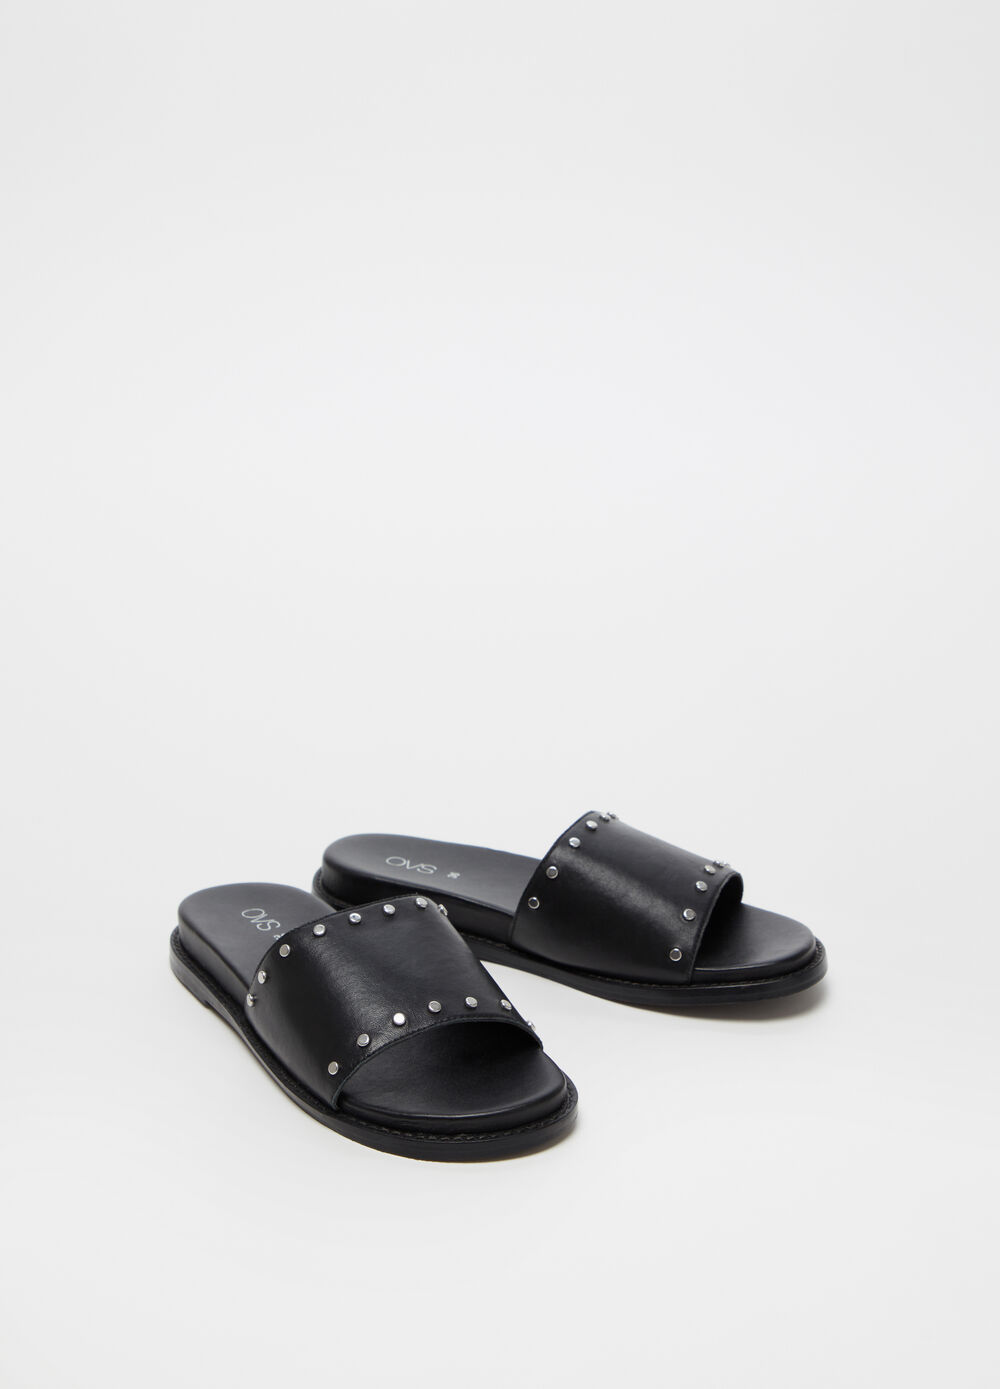 Sandals with strap and small studs